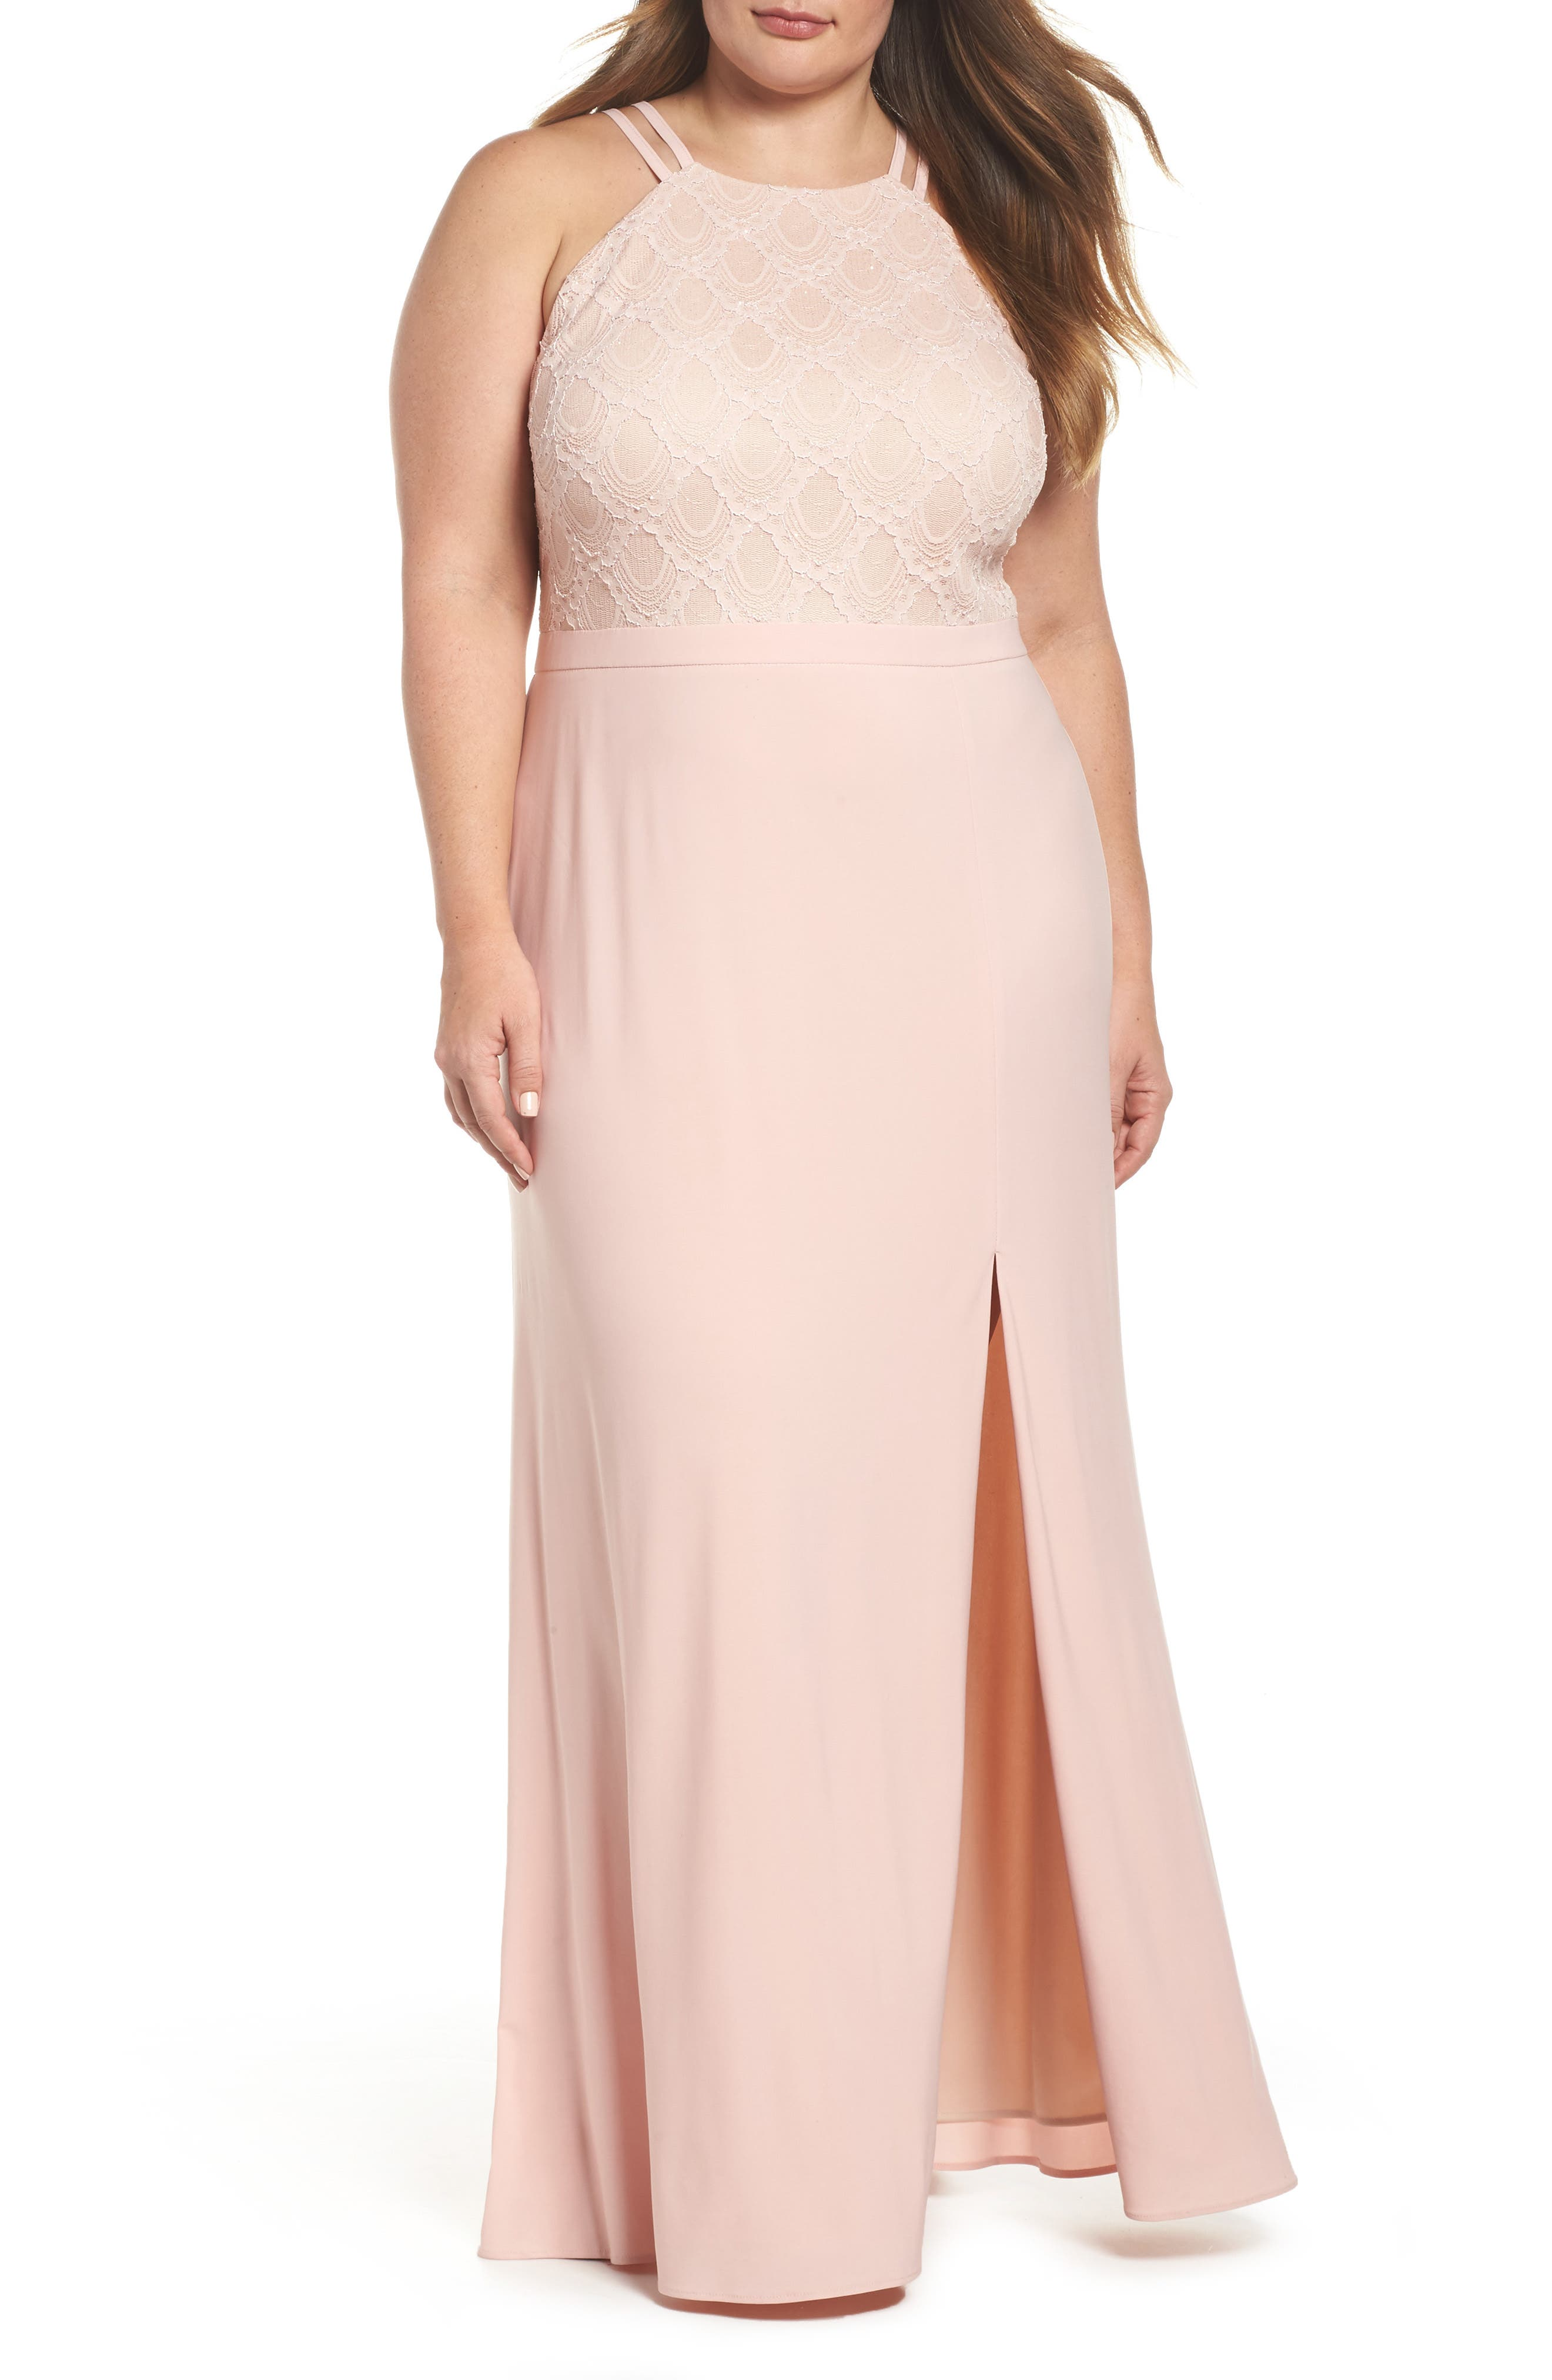 Lace Bodice Gown,                             Main thumbnail 1, color,                             Blush/ Nude